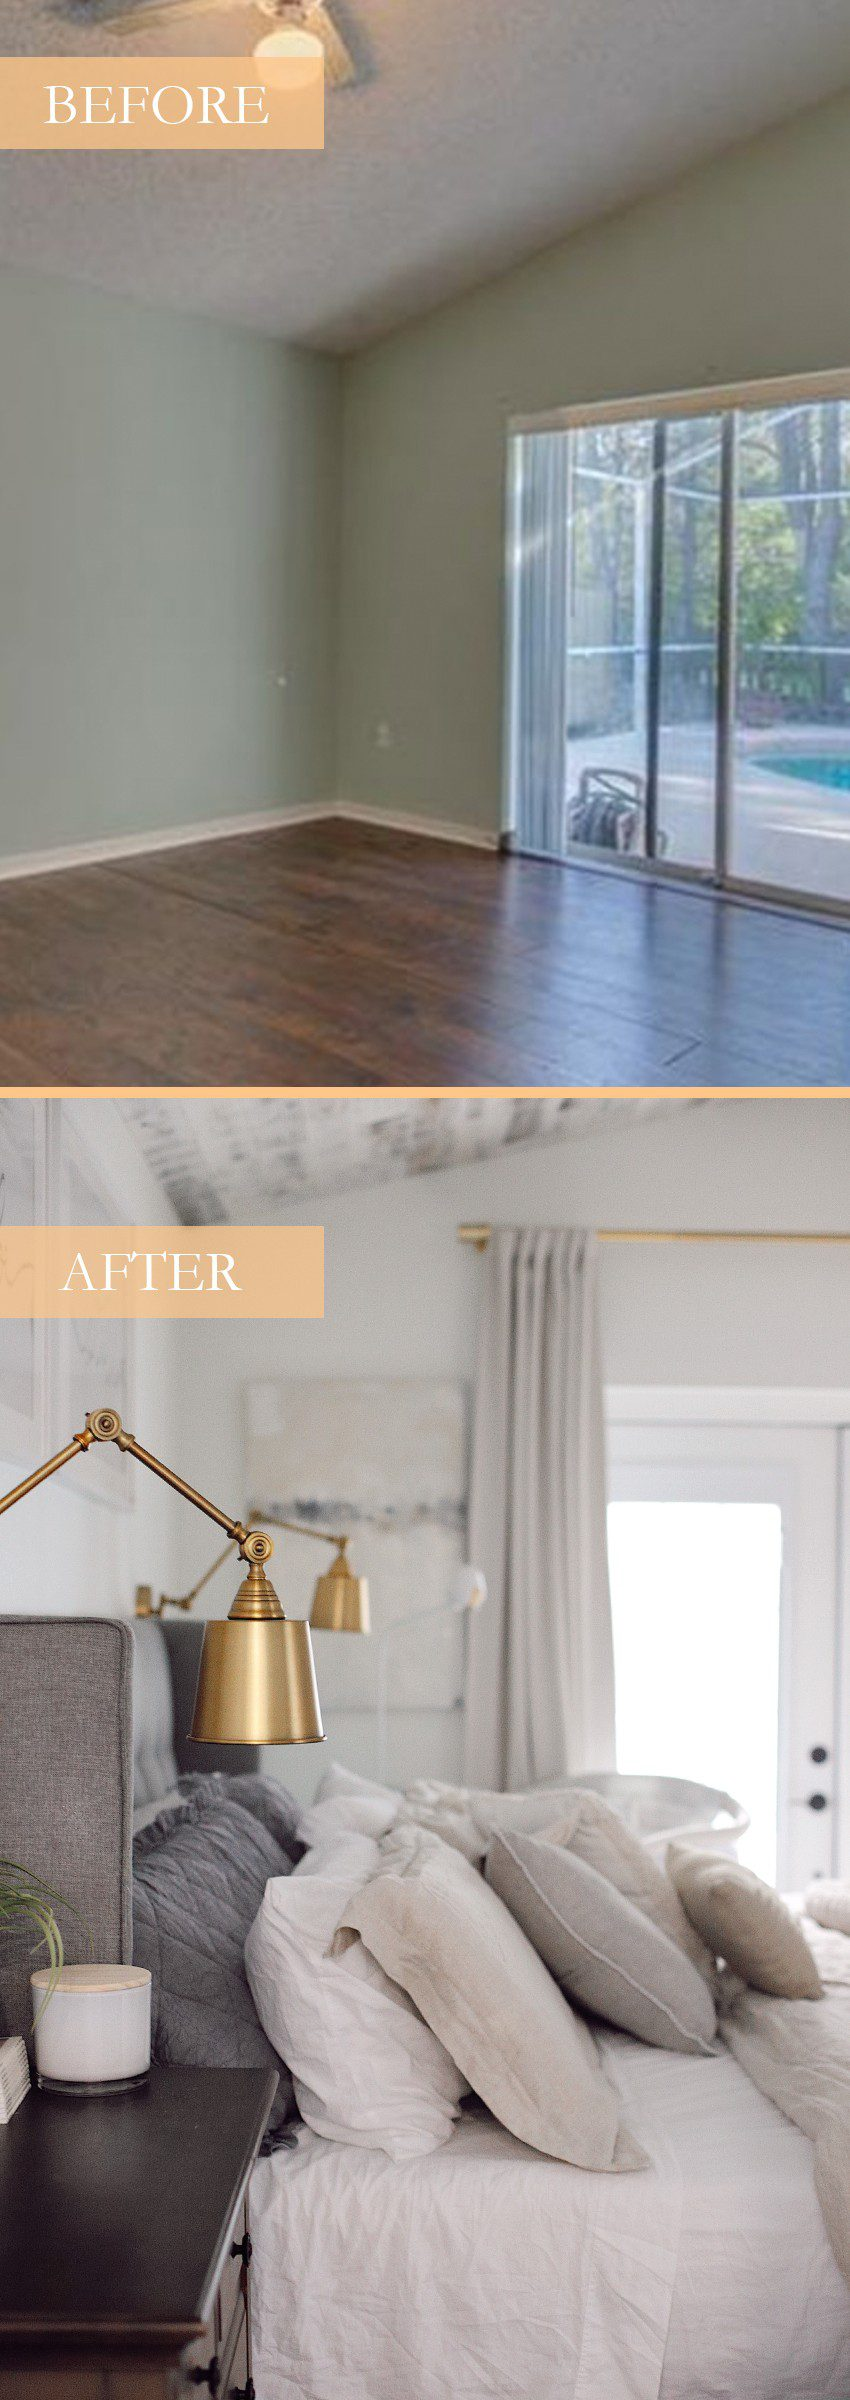 BEFORE AND AFTER! Creating a cozy, dream bed oasis. Shopping throw pillows and bedding at Belk. | Best Bedding by popular Florida life and style blog, Fresh Mommy: before and after image of a bedroom